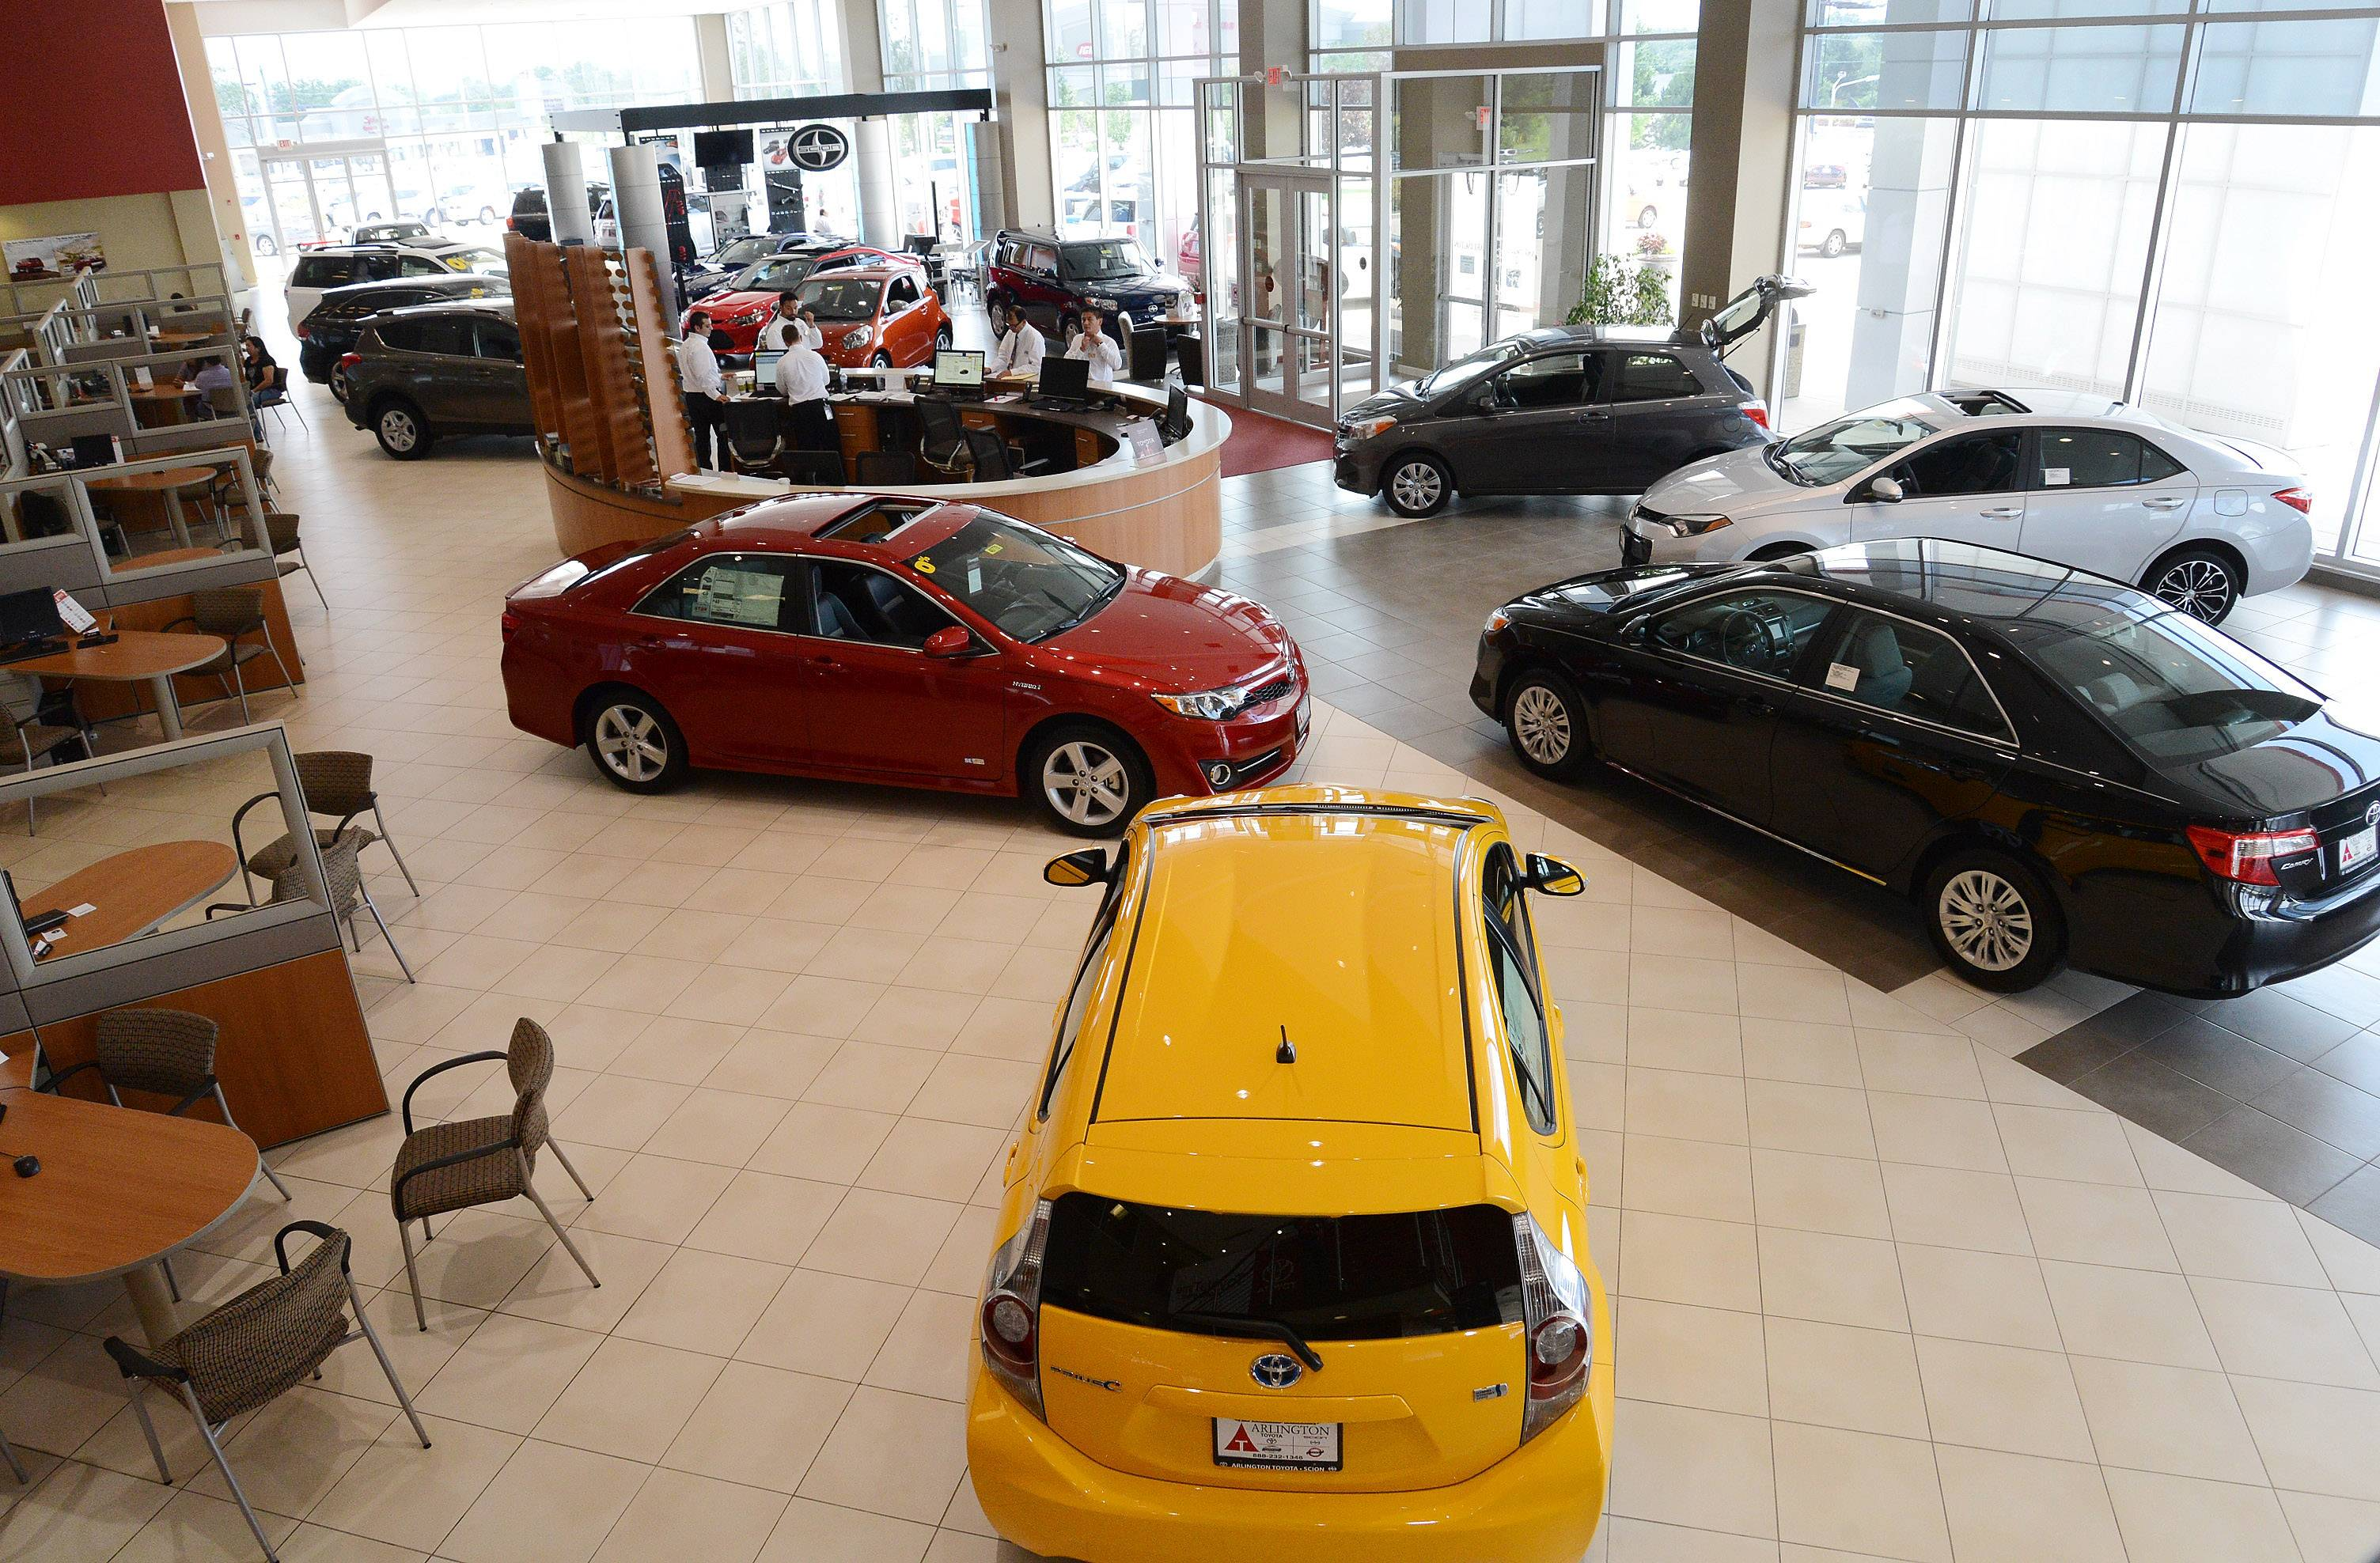 Arlington Toyota/Scion's showroom in Palatine.